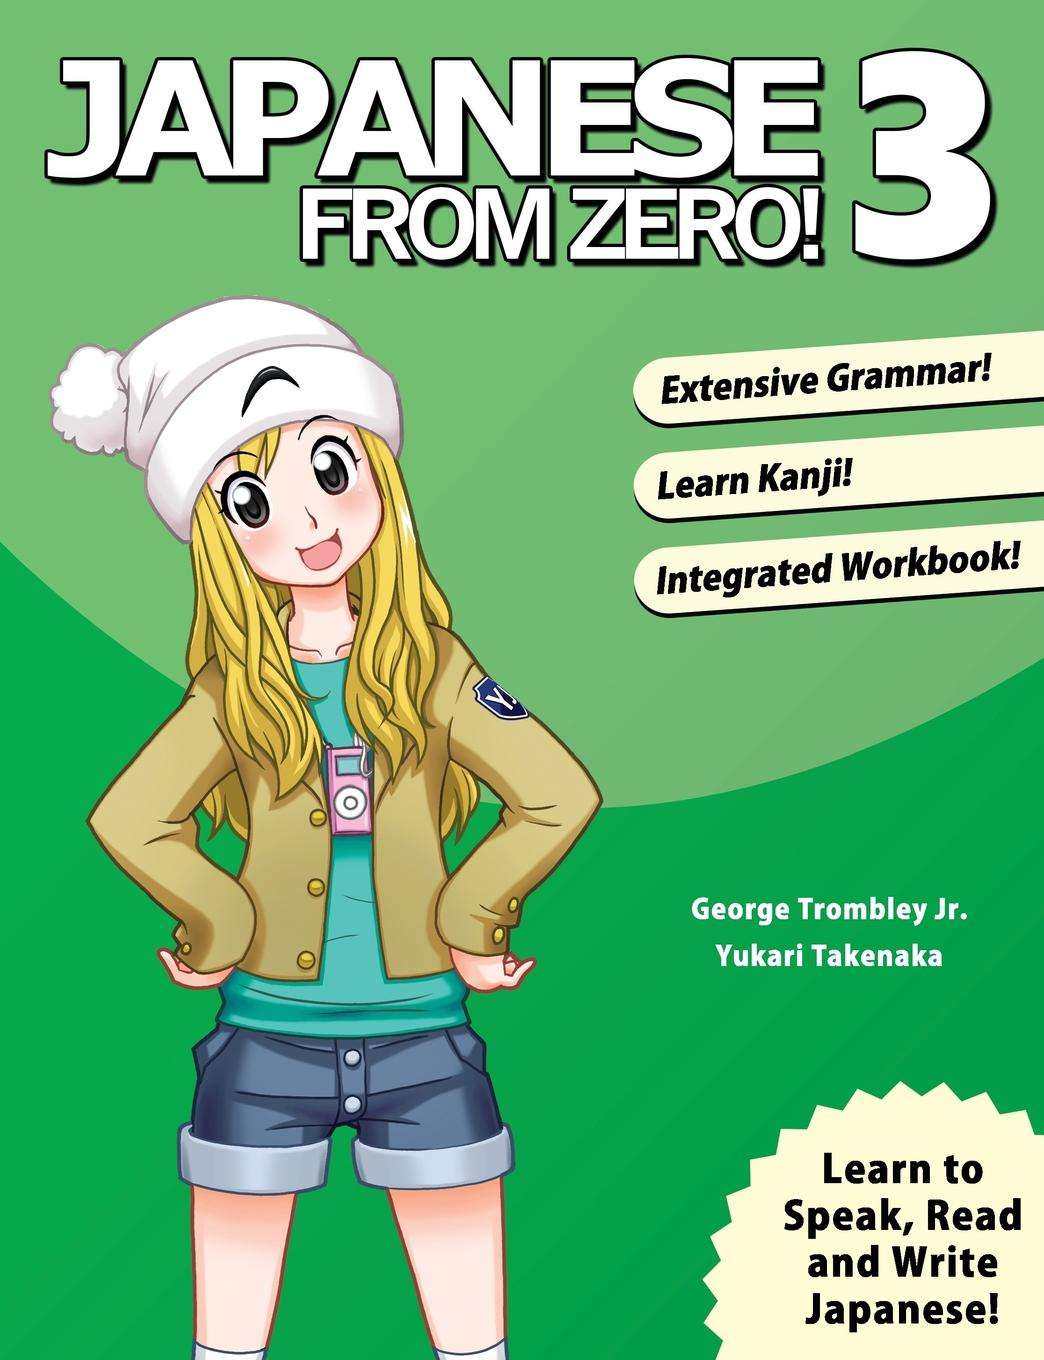 George Trombley, Yukari Takenaka Japanese From Zero. 3. Proven Techniques to Learn Japanese for Students and Professionals sachiko toyozato japanese for beginners learning conversational japanese second edition includes audio disc